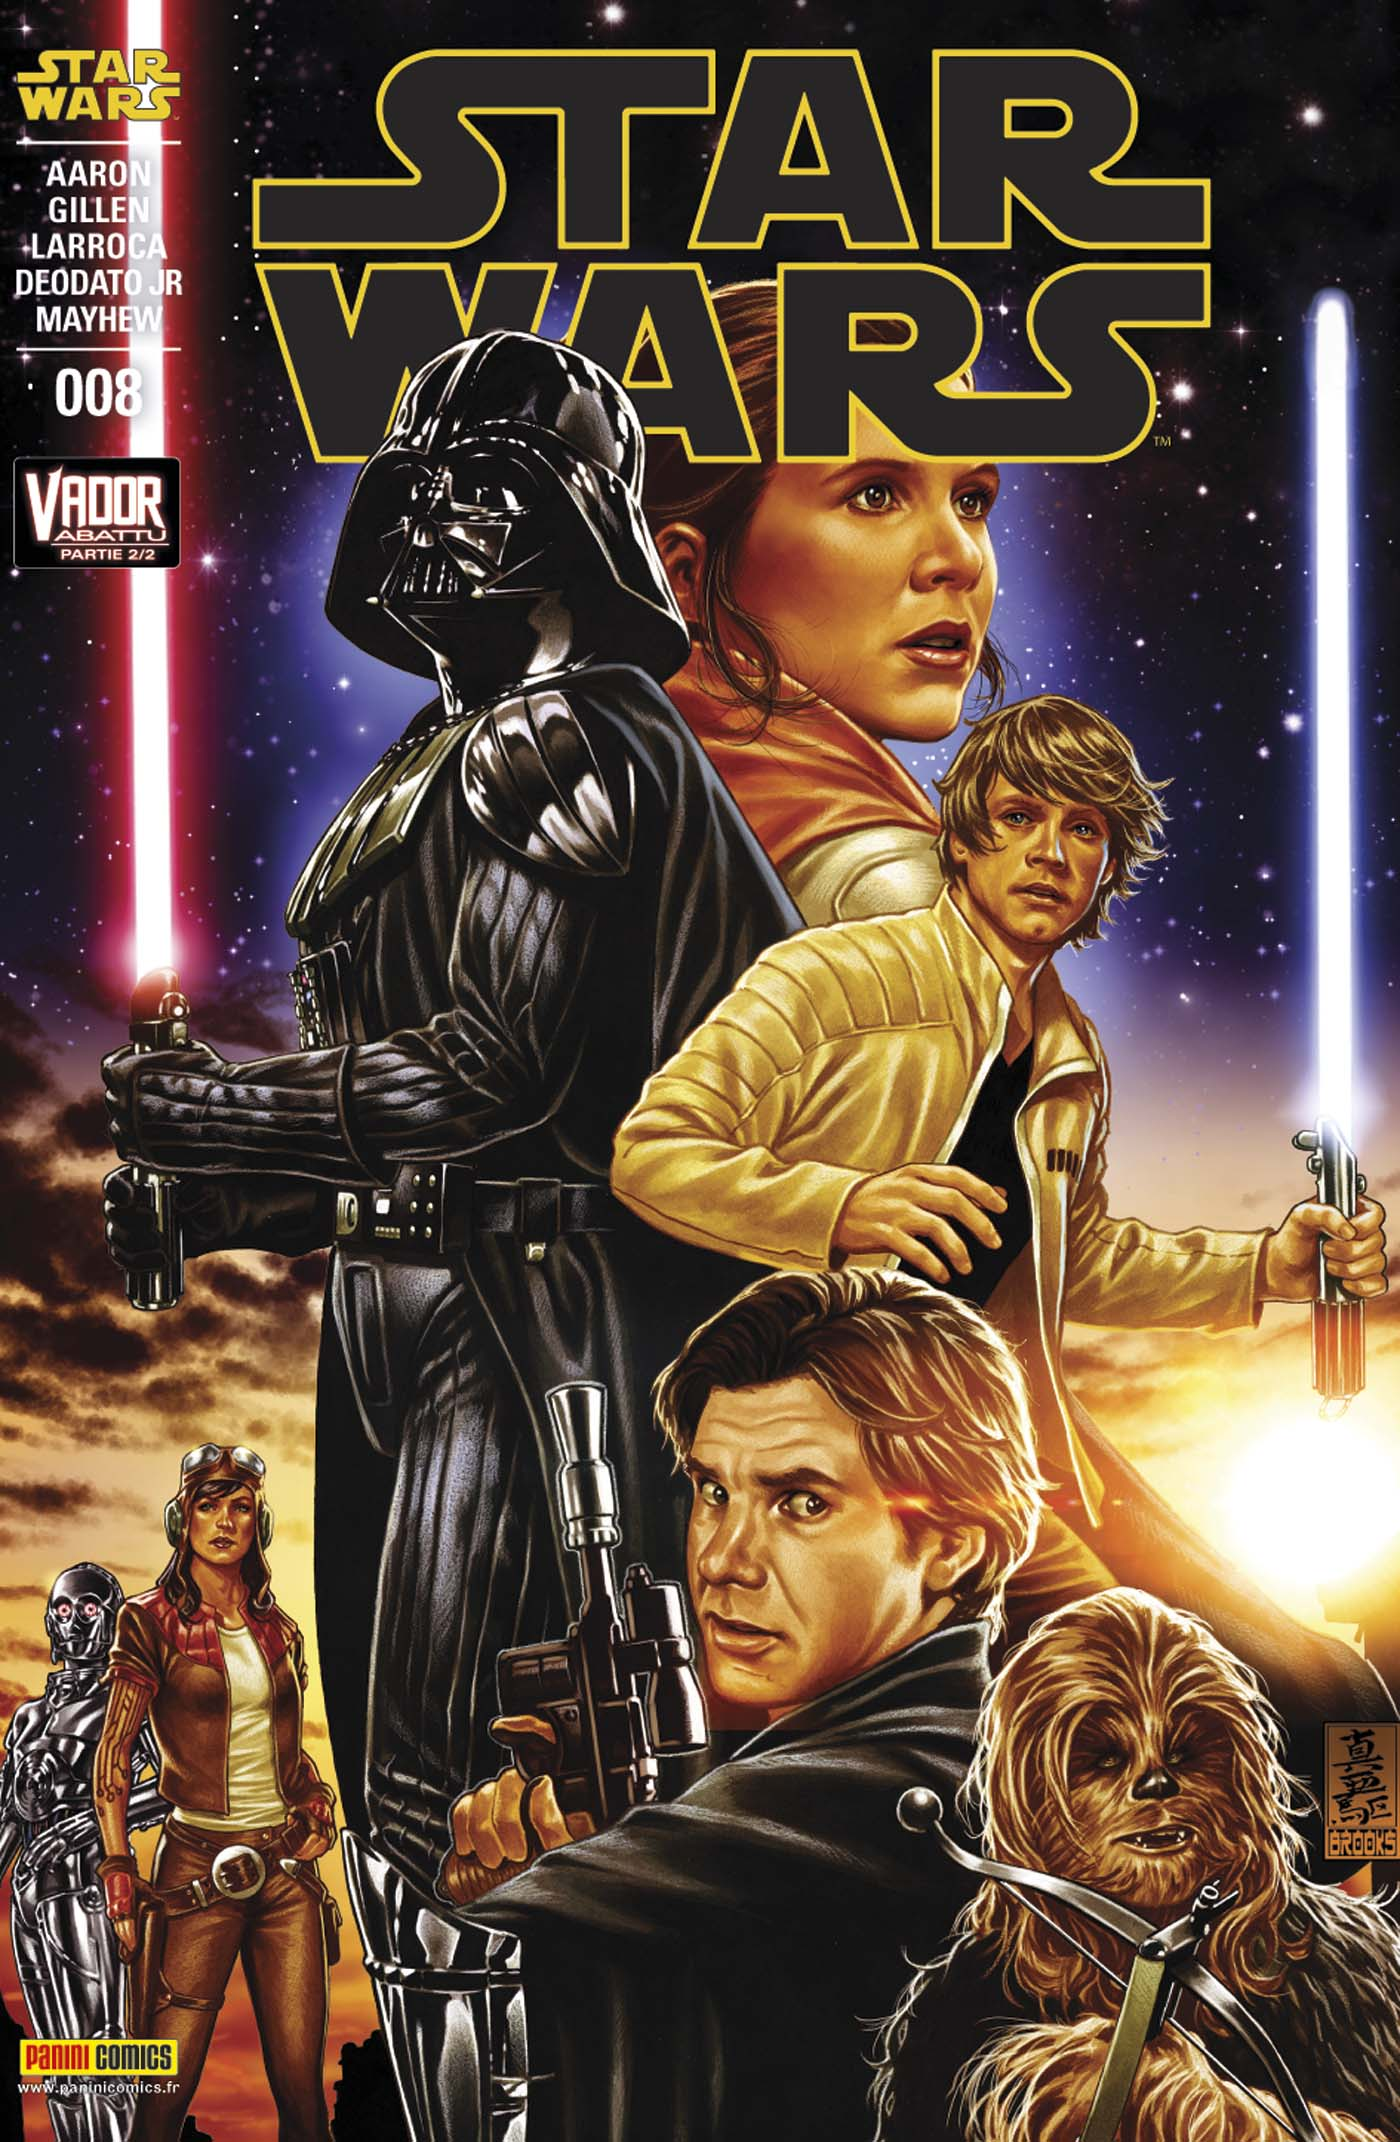 Star Wars Comics 8 - Couverture A